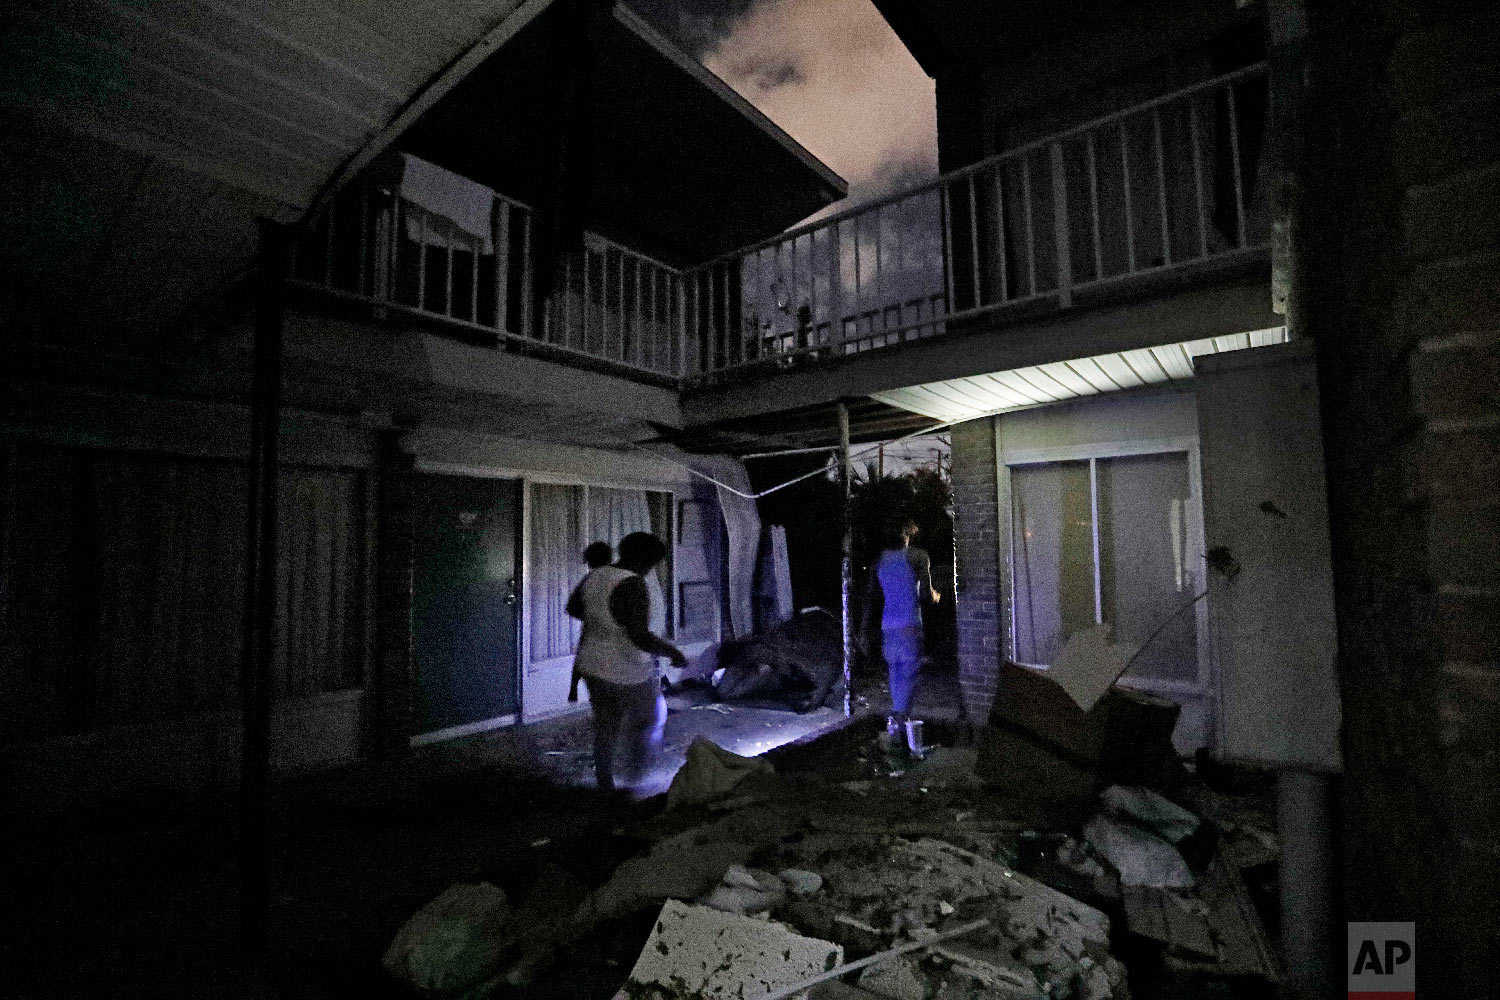 Residents walk past roofing debris at the damaged American Quality Lodge where they continue to live in the aftermath of Hurricane Michael in Panama City, Fla., Oct. 16, 2018. (AP Photo/David Goldman)